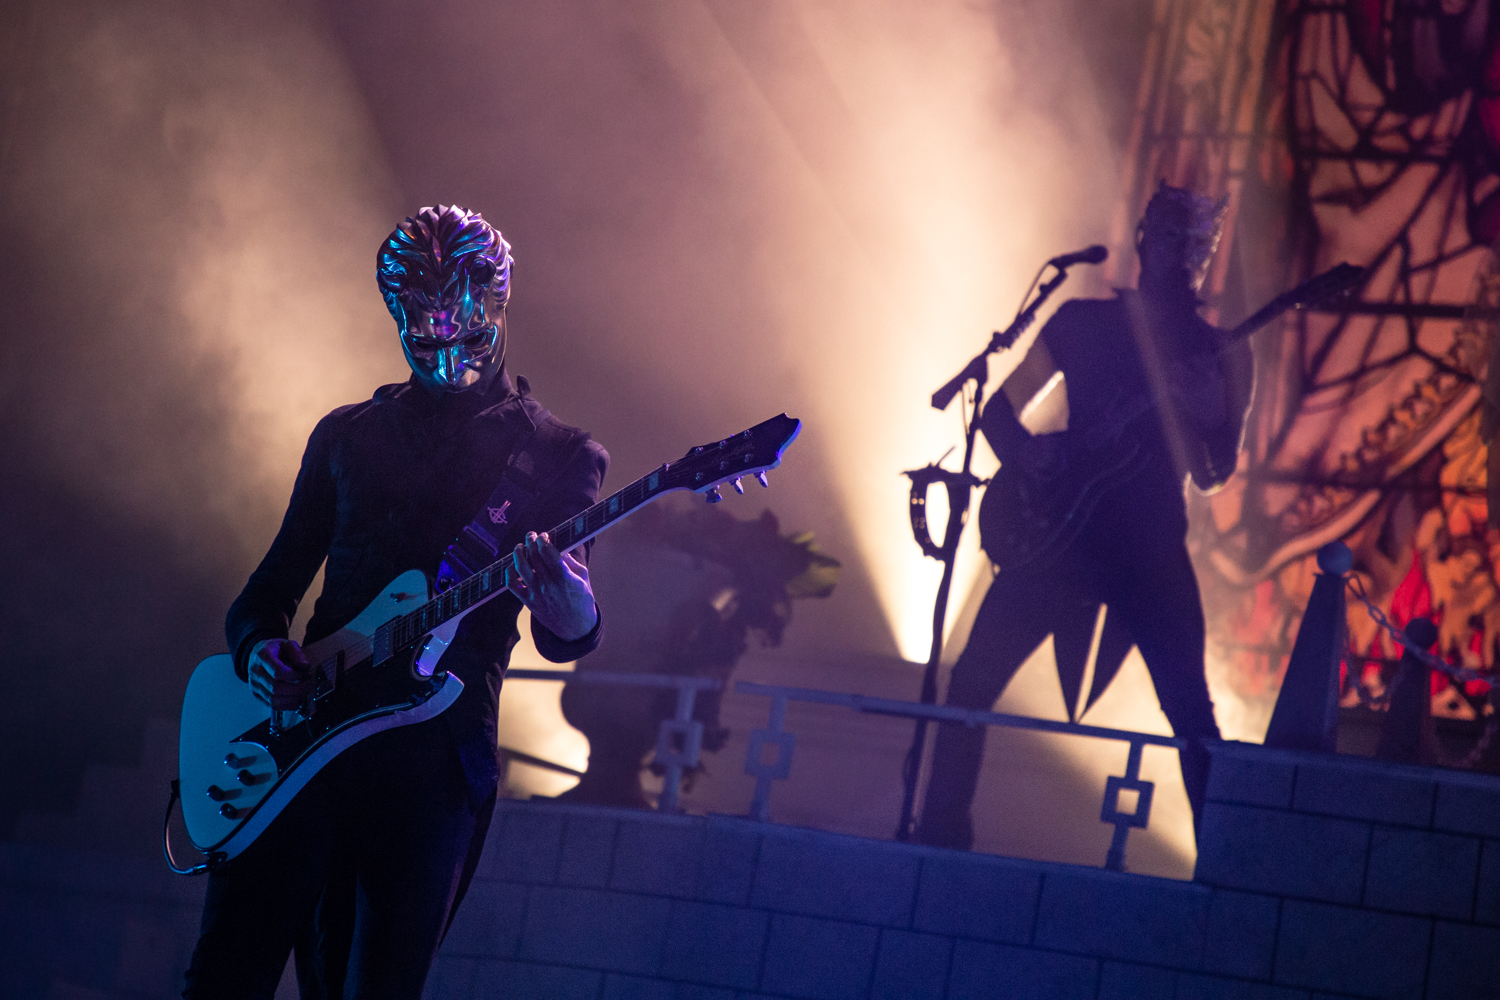 Ghost Barclays Center 2018 19 Live Review: Ghost Turn Brooklyns Barclays Center Into a House of Worship (12/15)